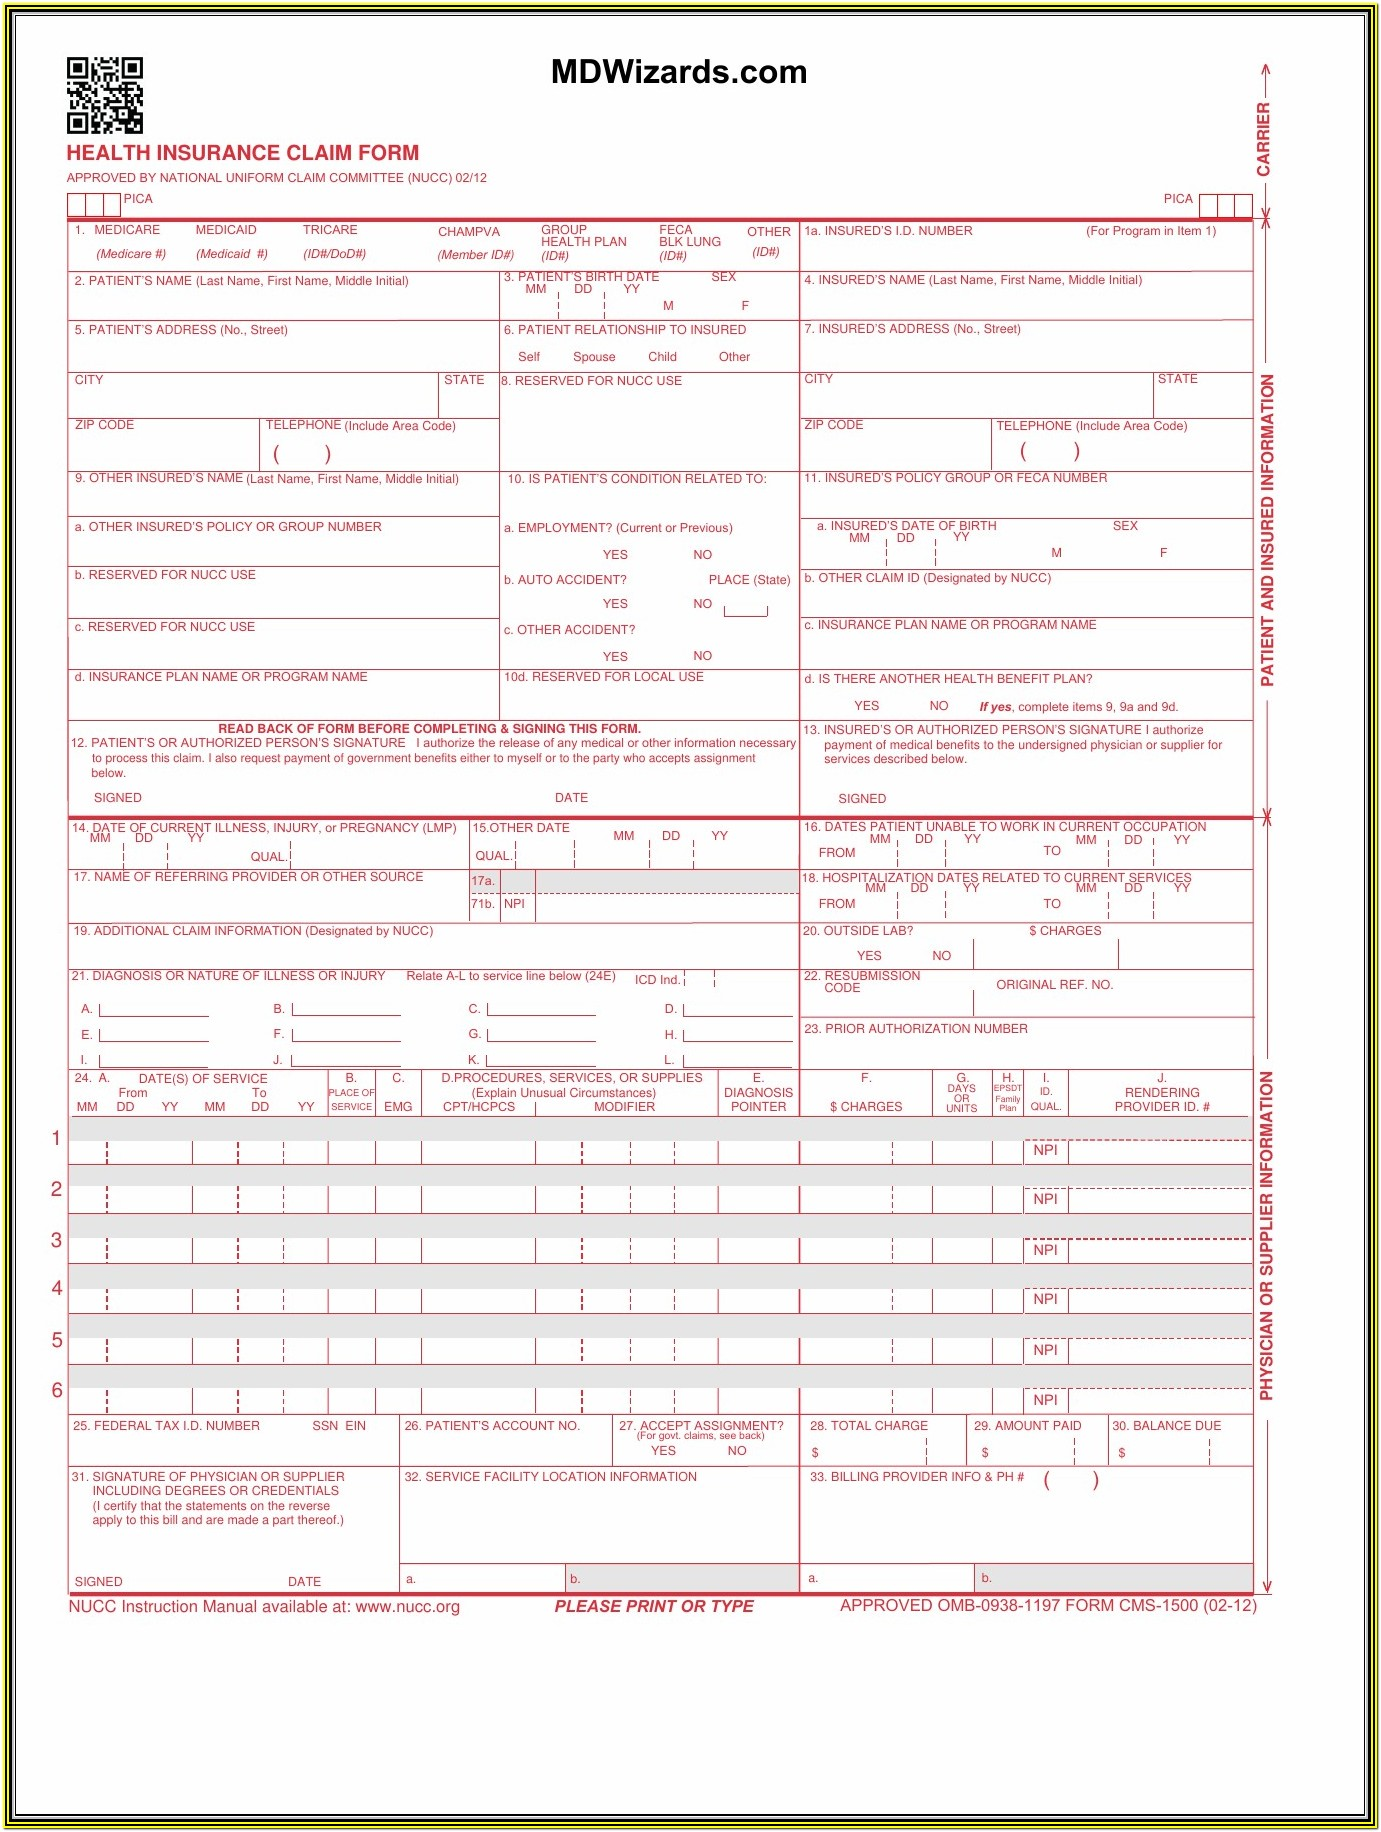 Cms Hcfa 1500 Form Download